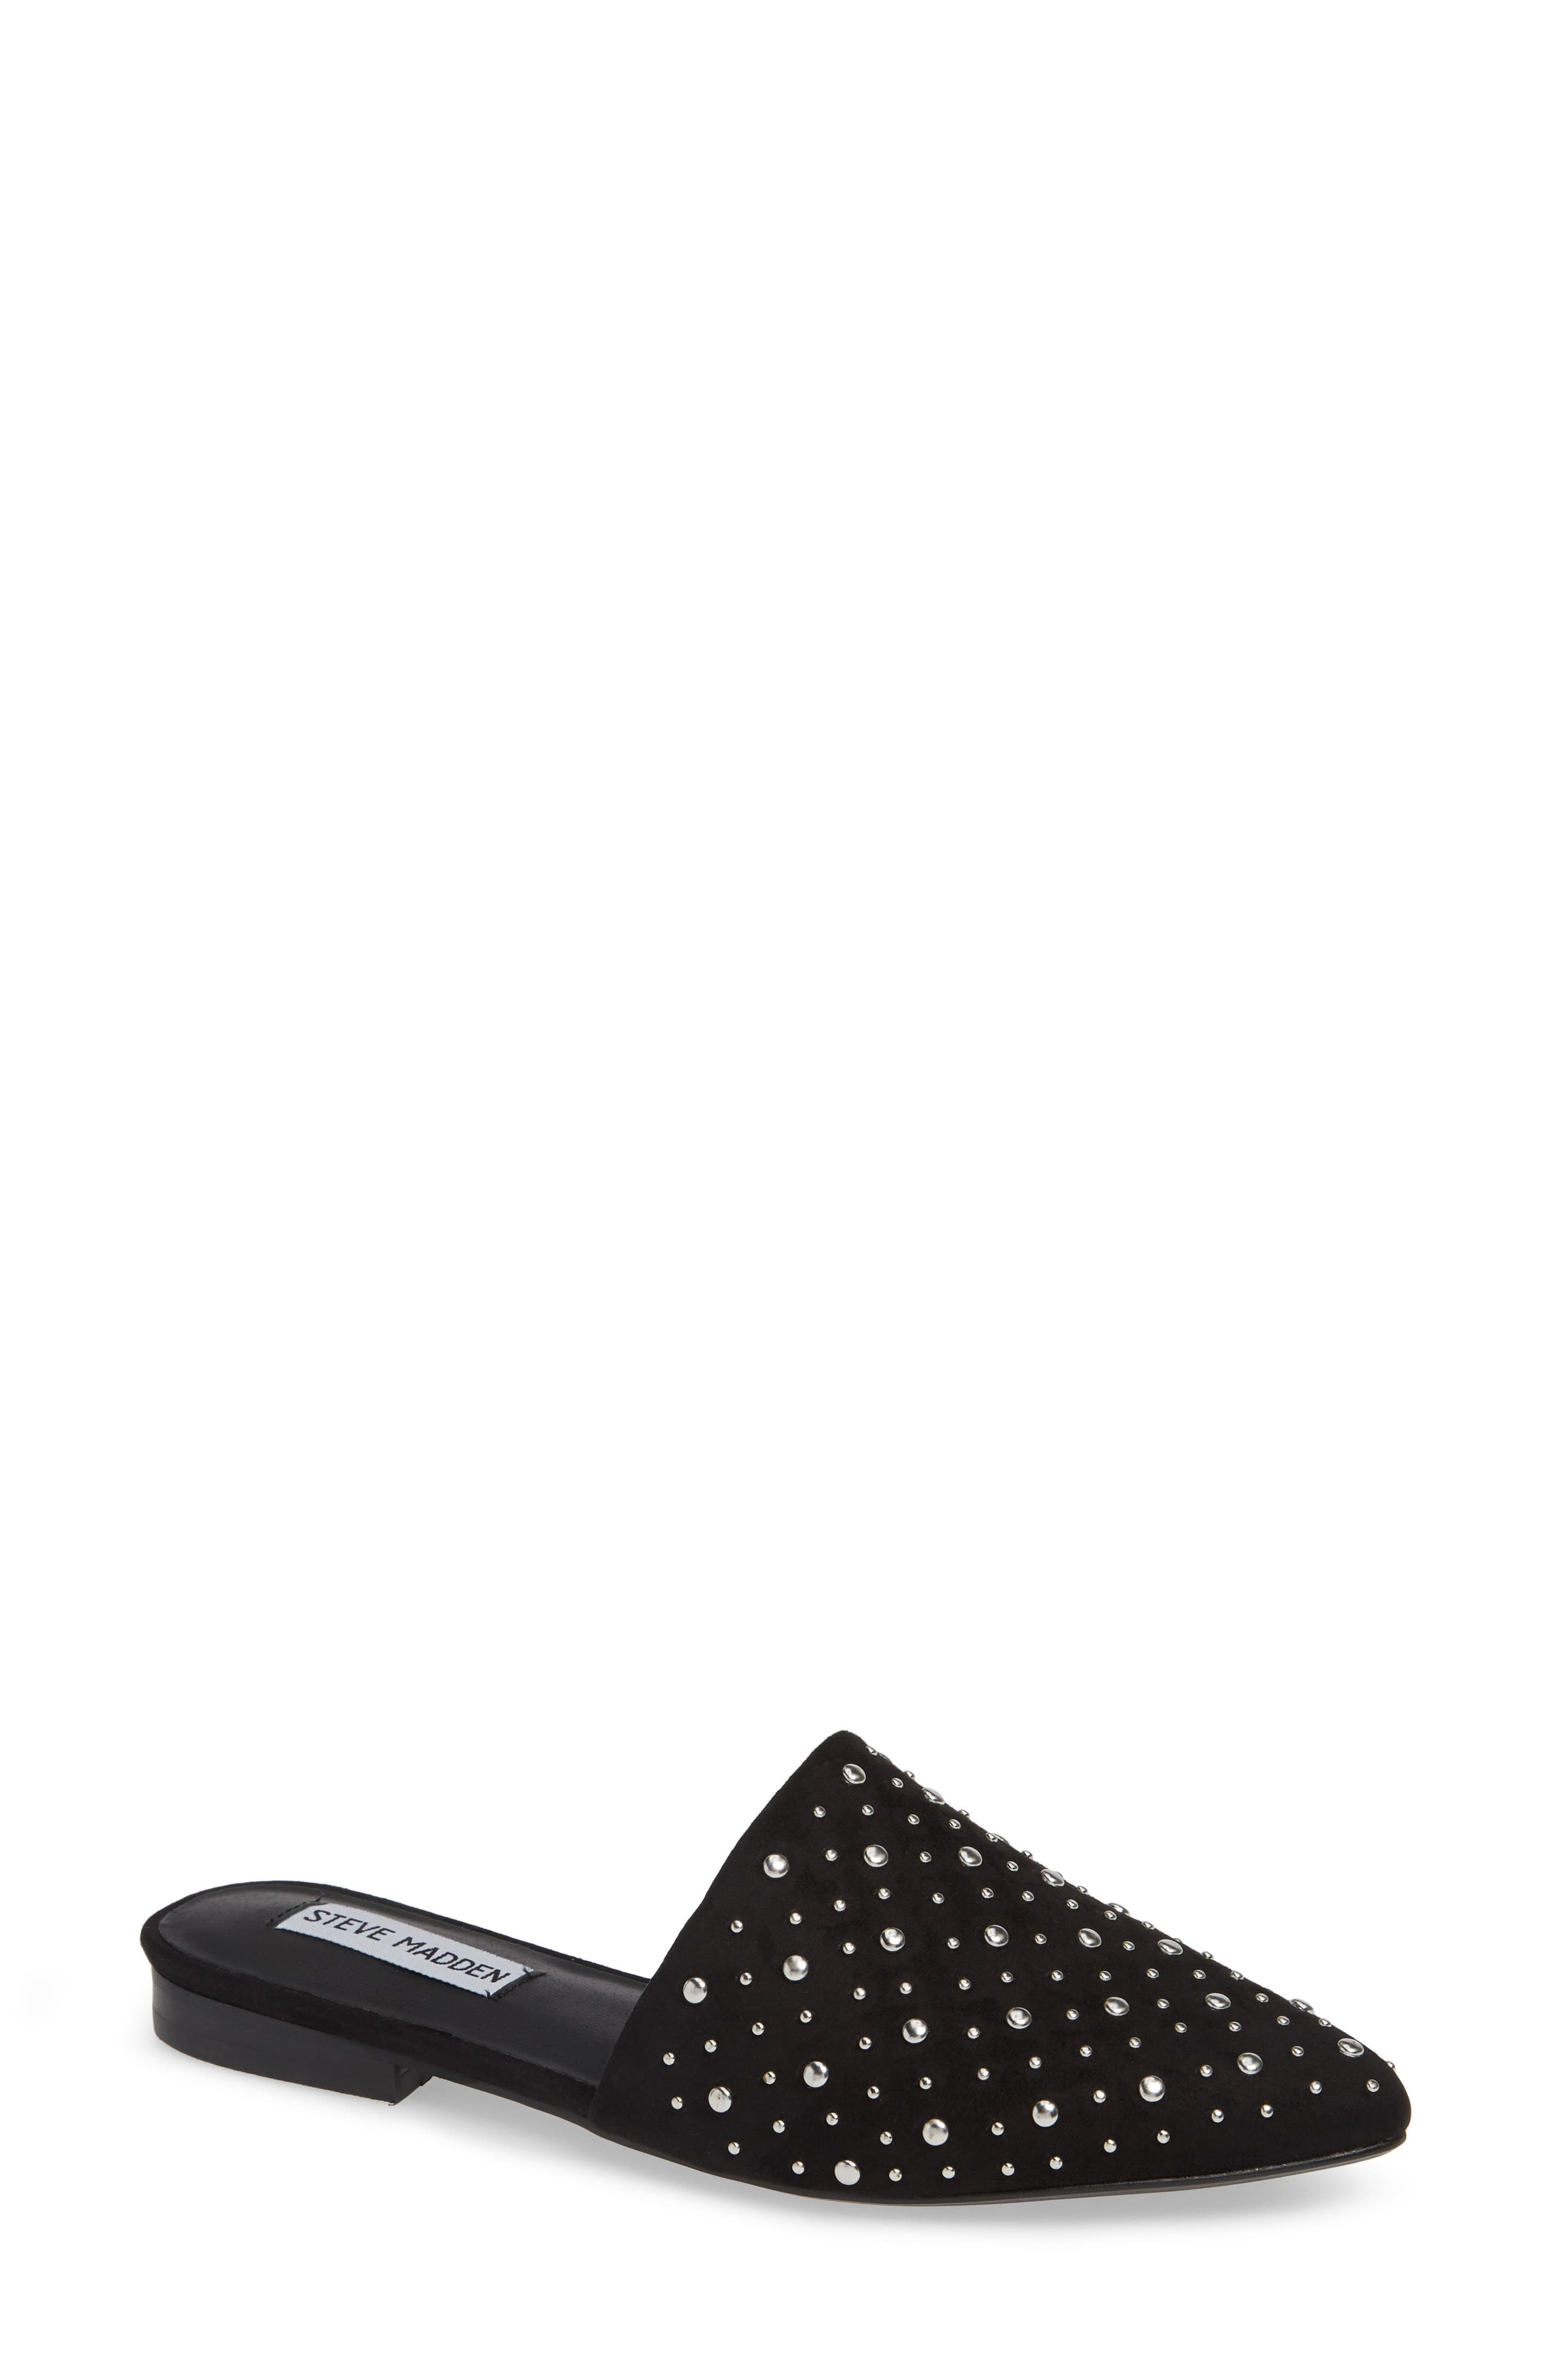 STEVE MADDEN, Tempo Studded Mule, Main thumbnail 1, color, 001